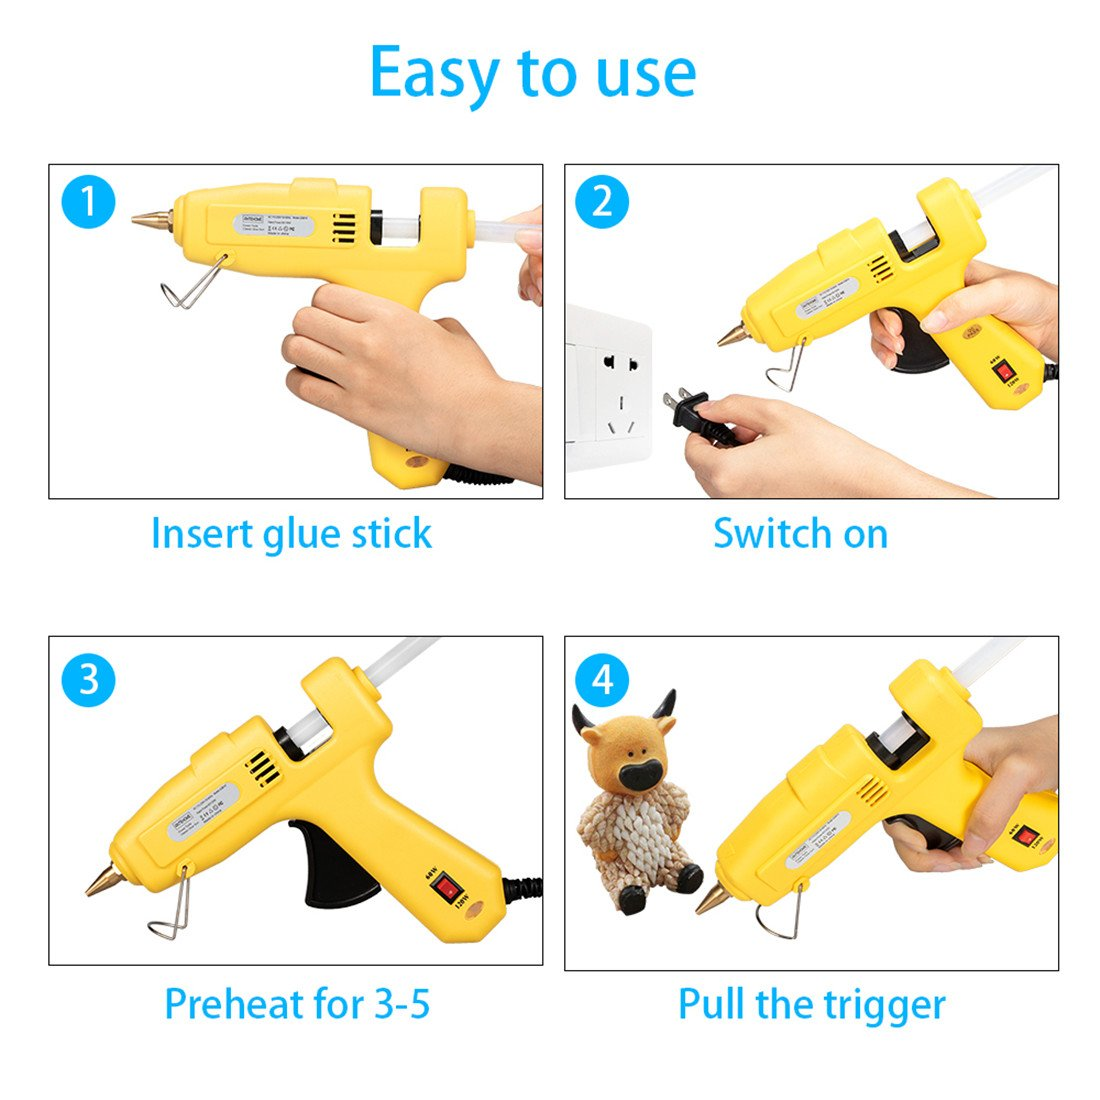 Hot Glue Gun,Antehome 60/120W Dual Power High Temperature Hot Melt Glue Gun with 15 pcs Glue Sticks,for DIY,Small Arts Craft Projects,Decoration and Gifts,Household (B) by Antehome (Image #5)